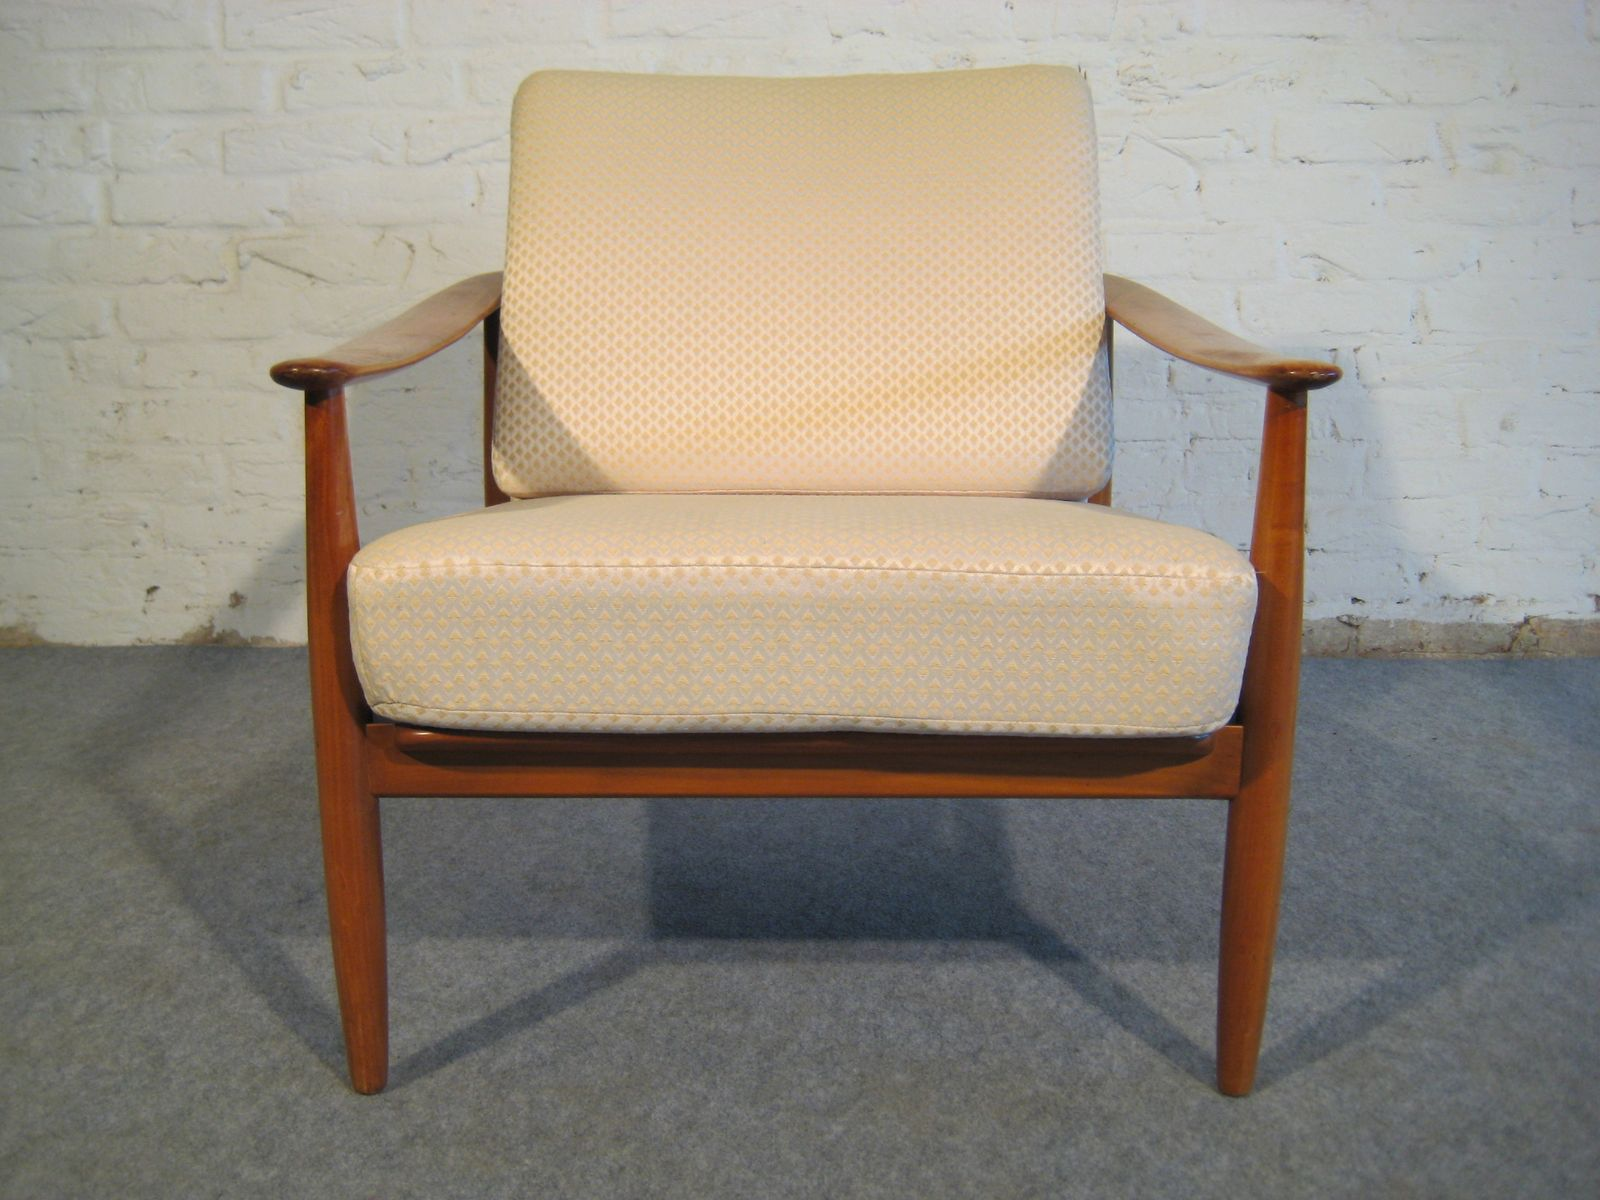 Mid century modern easy chair 1950s for sale at pamono for Z chair mid century